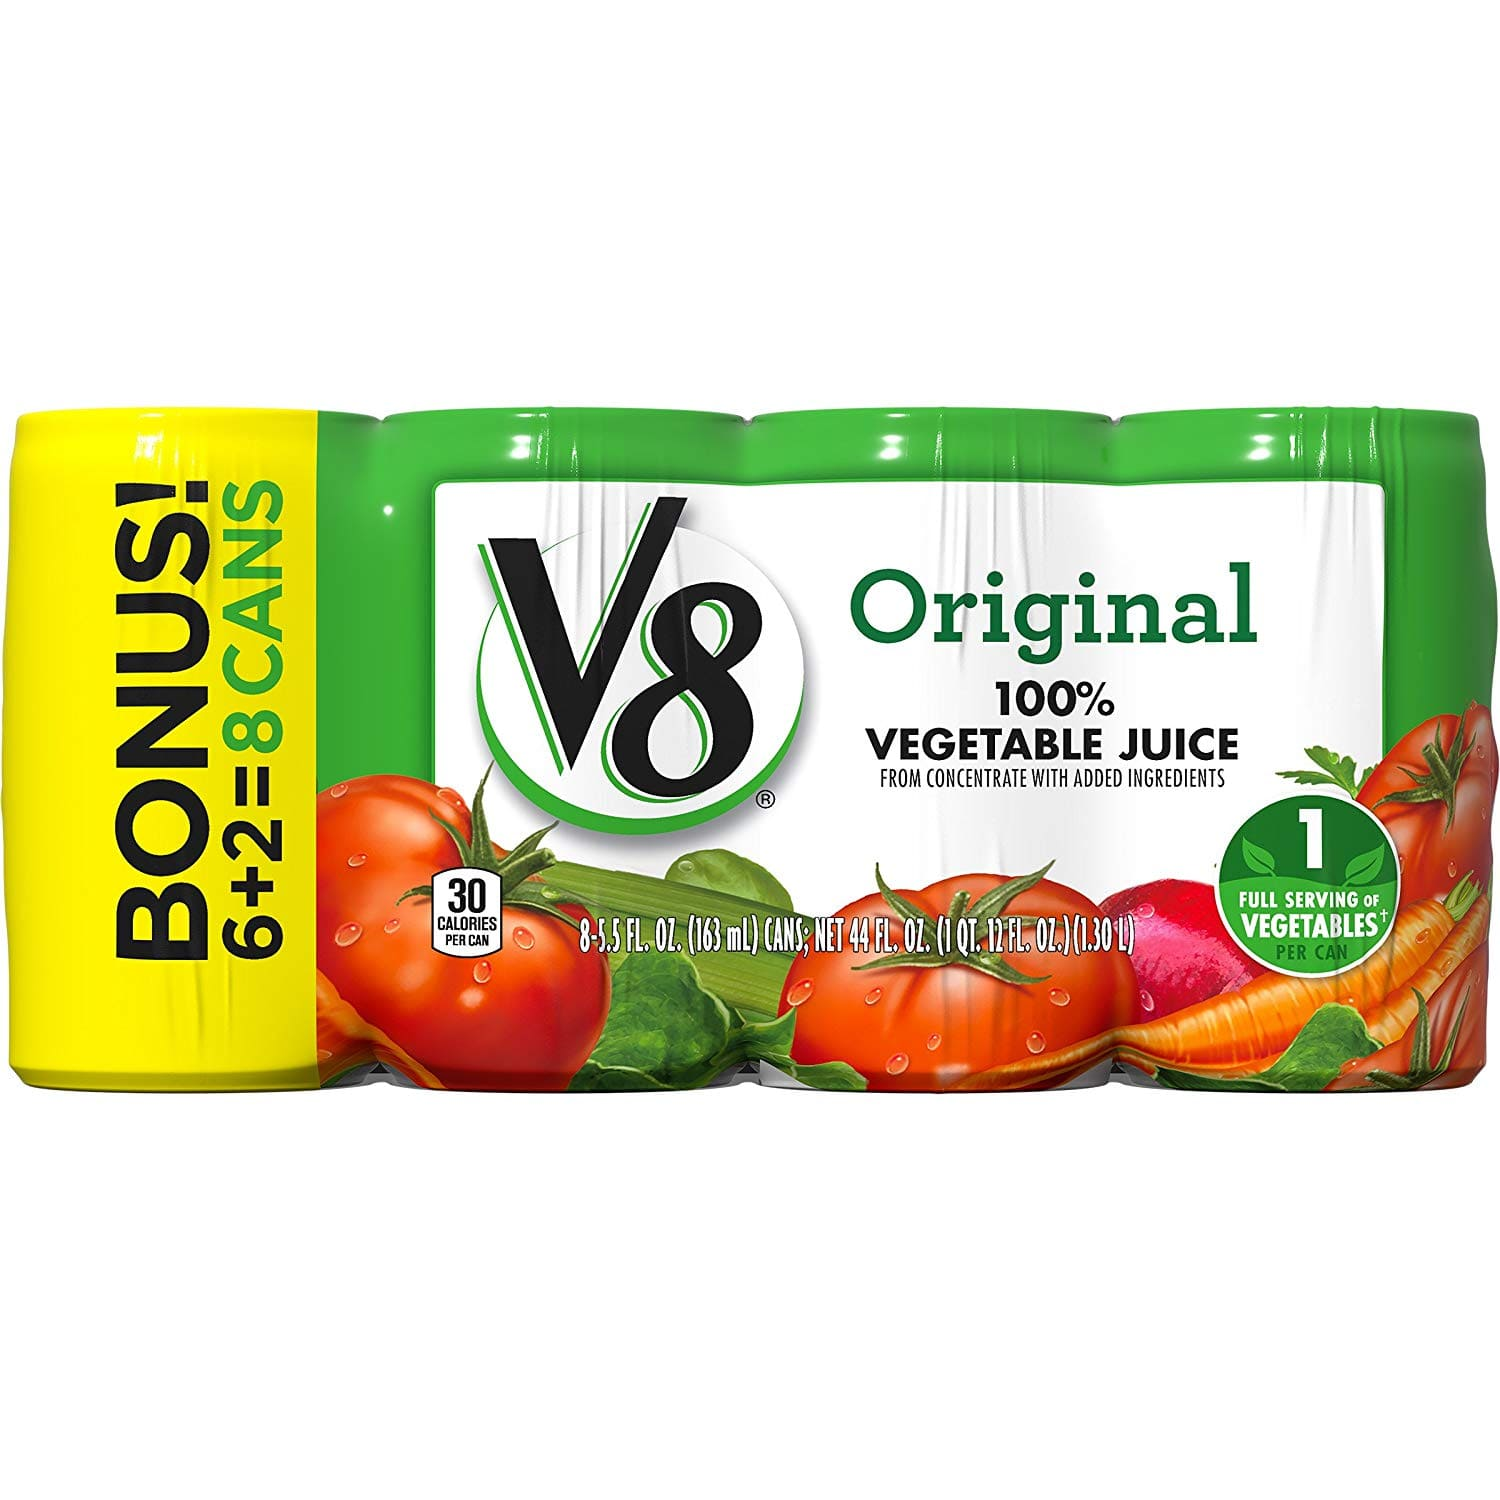 V8 Original 100% Vegetable Juice, 5.5 oz. Can, 8 Count - $4.30 at Amazon